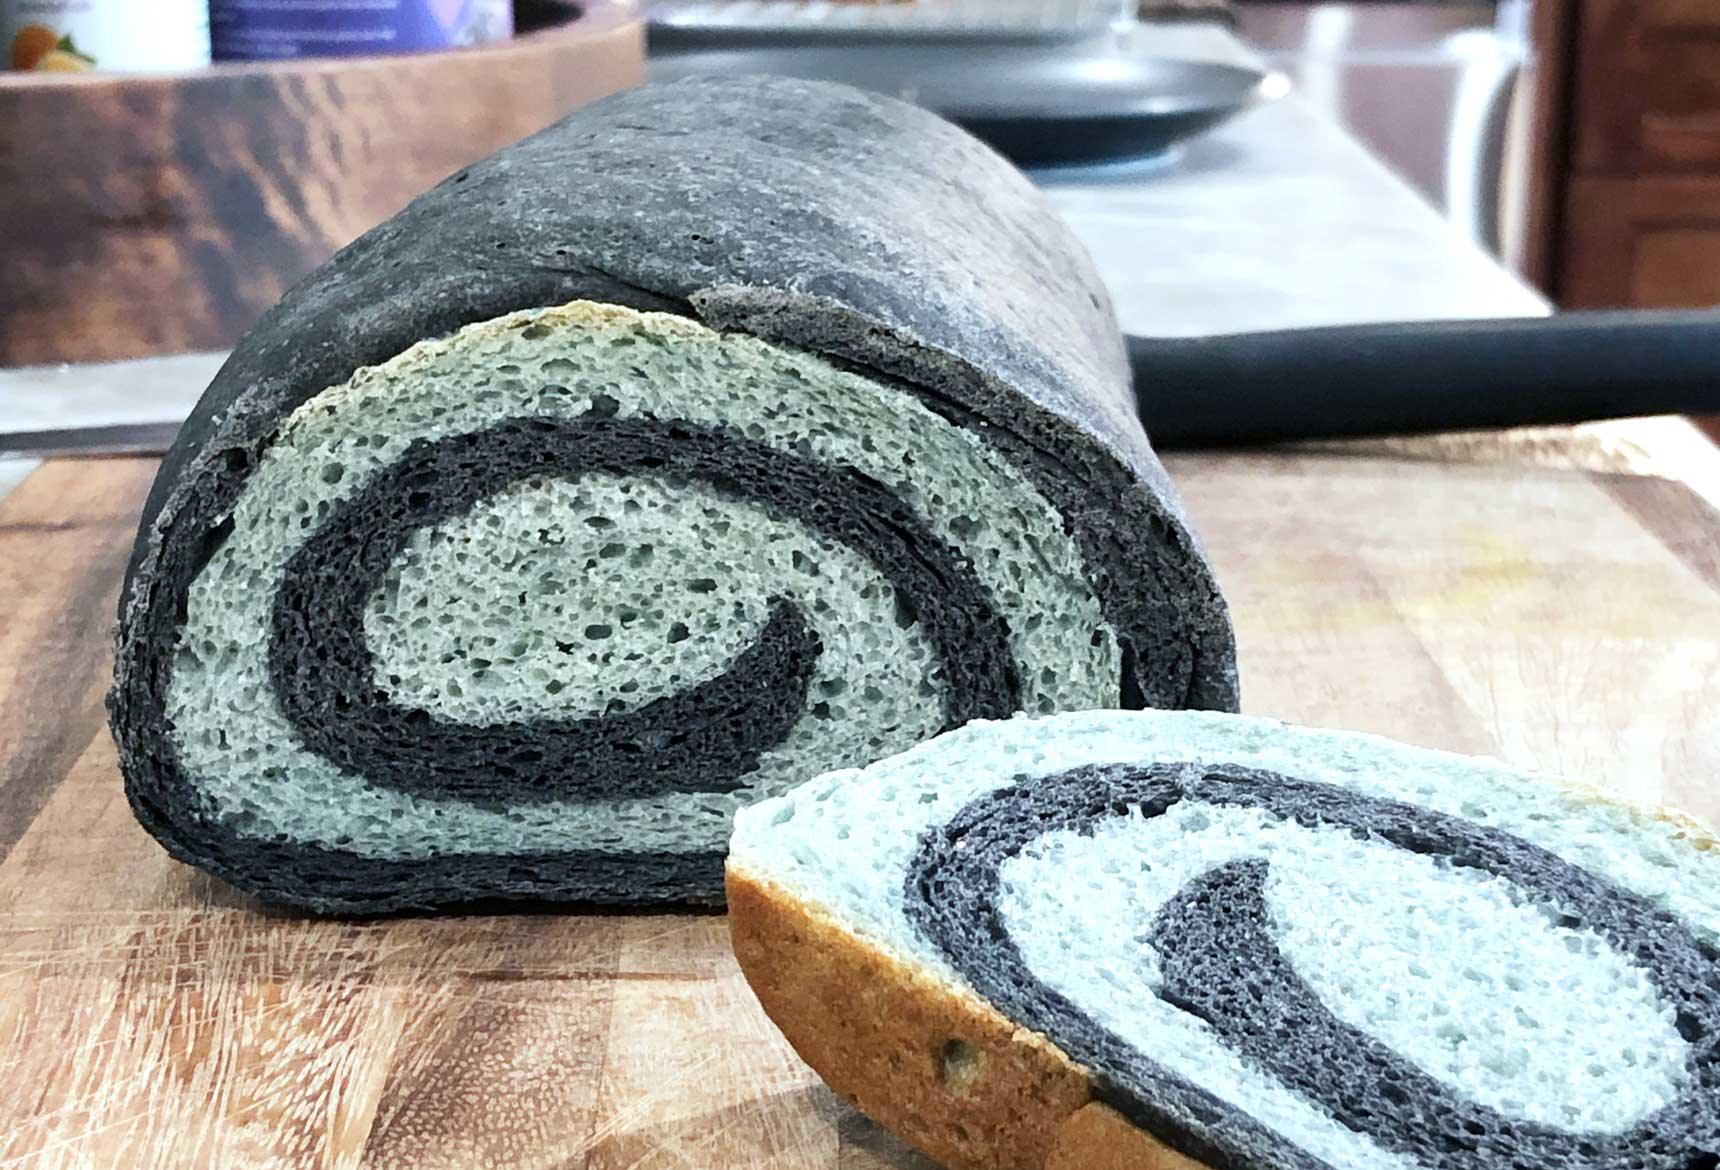 loaf of black and blue swirl bread with one piece sliced showing the spiral